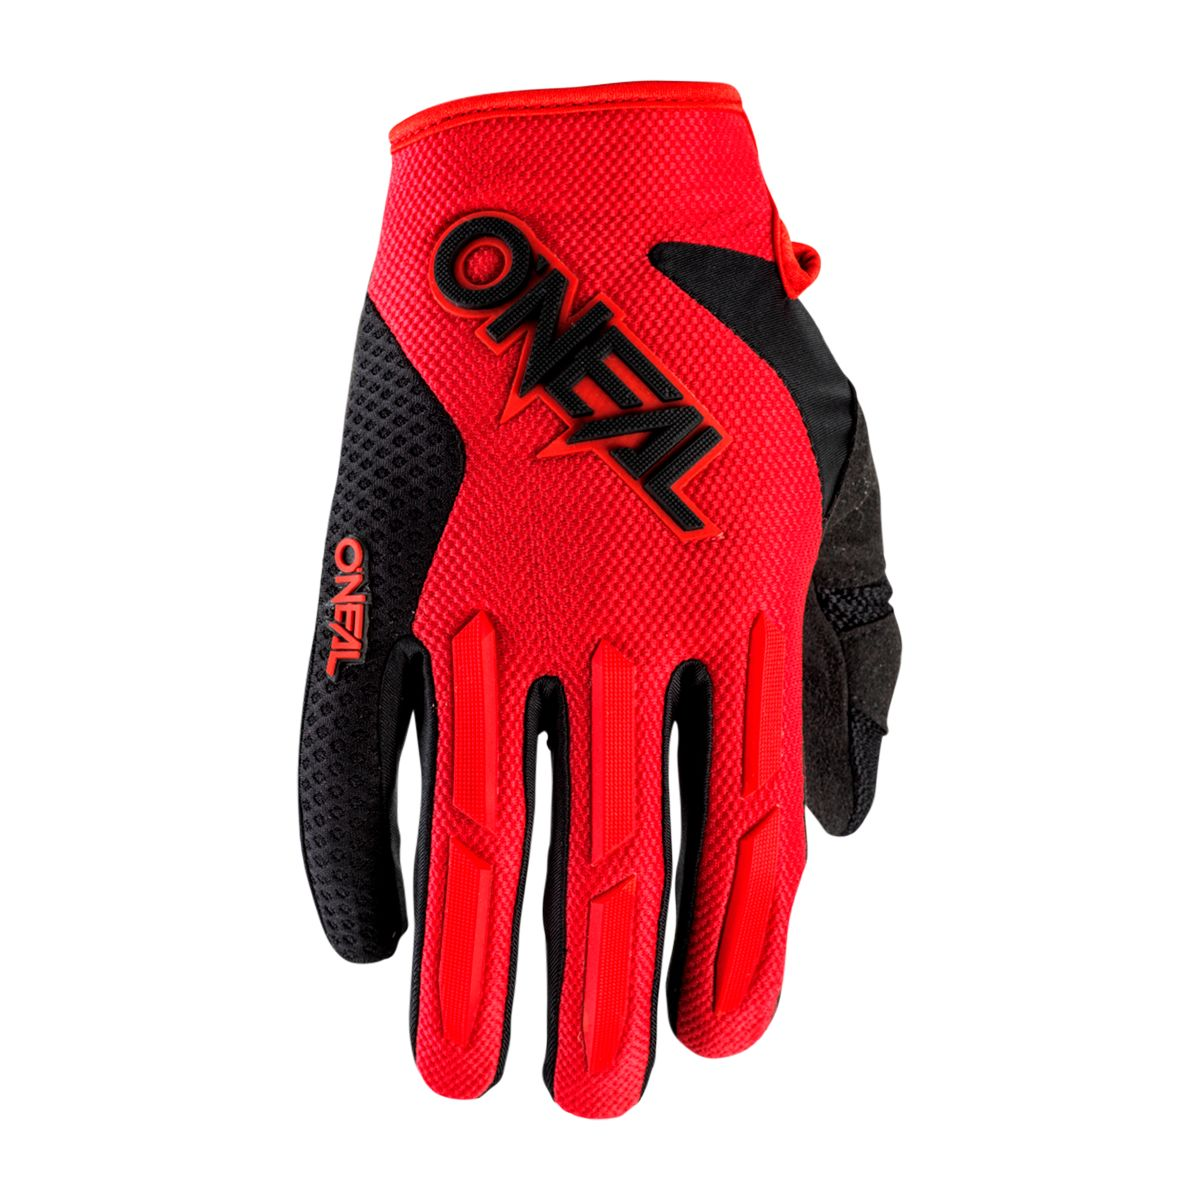 ELEMENT Cycling Gloves